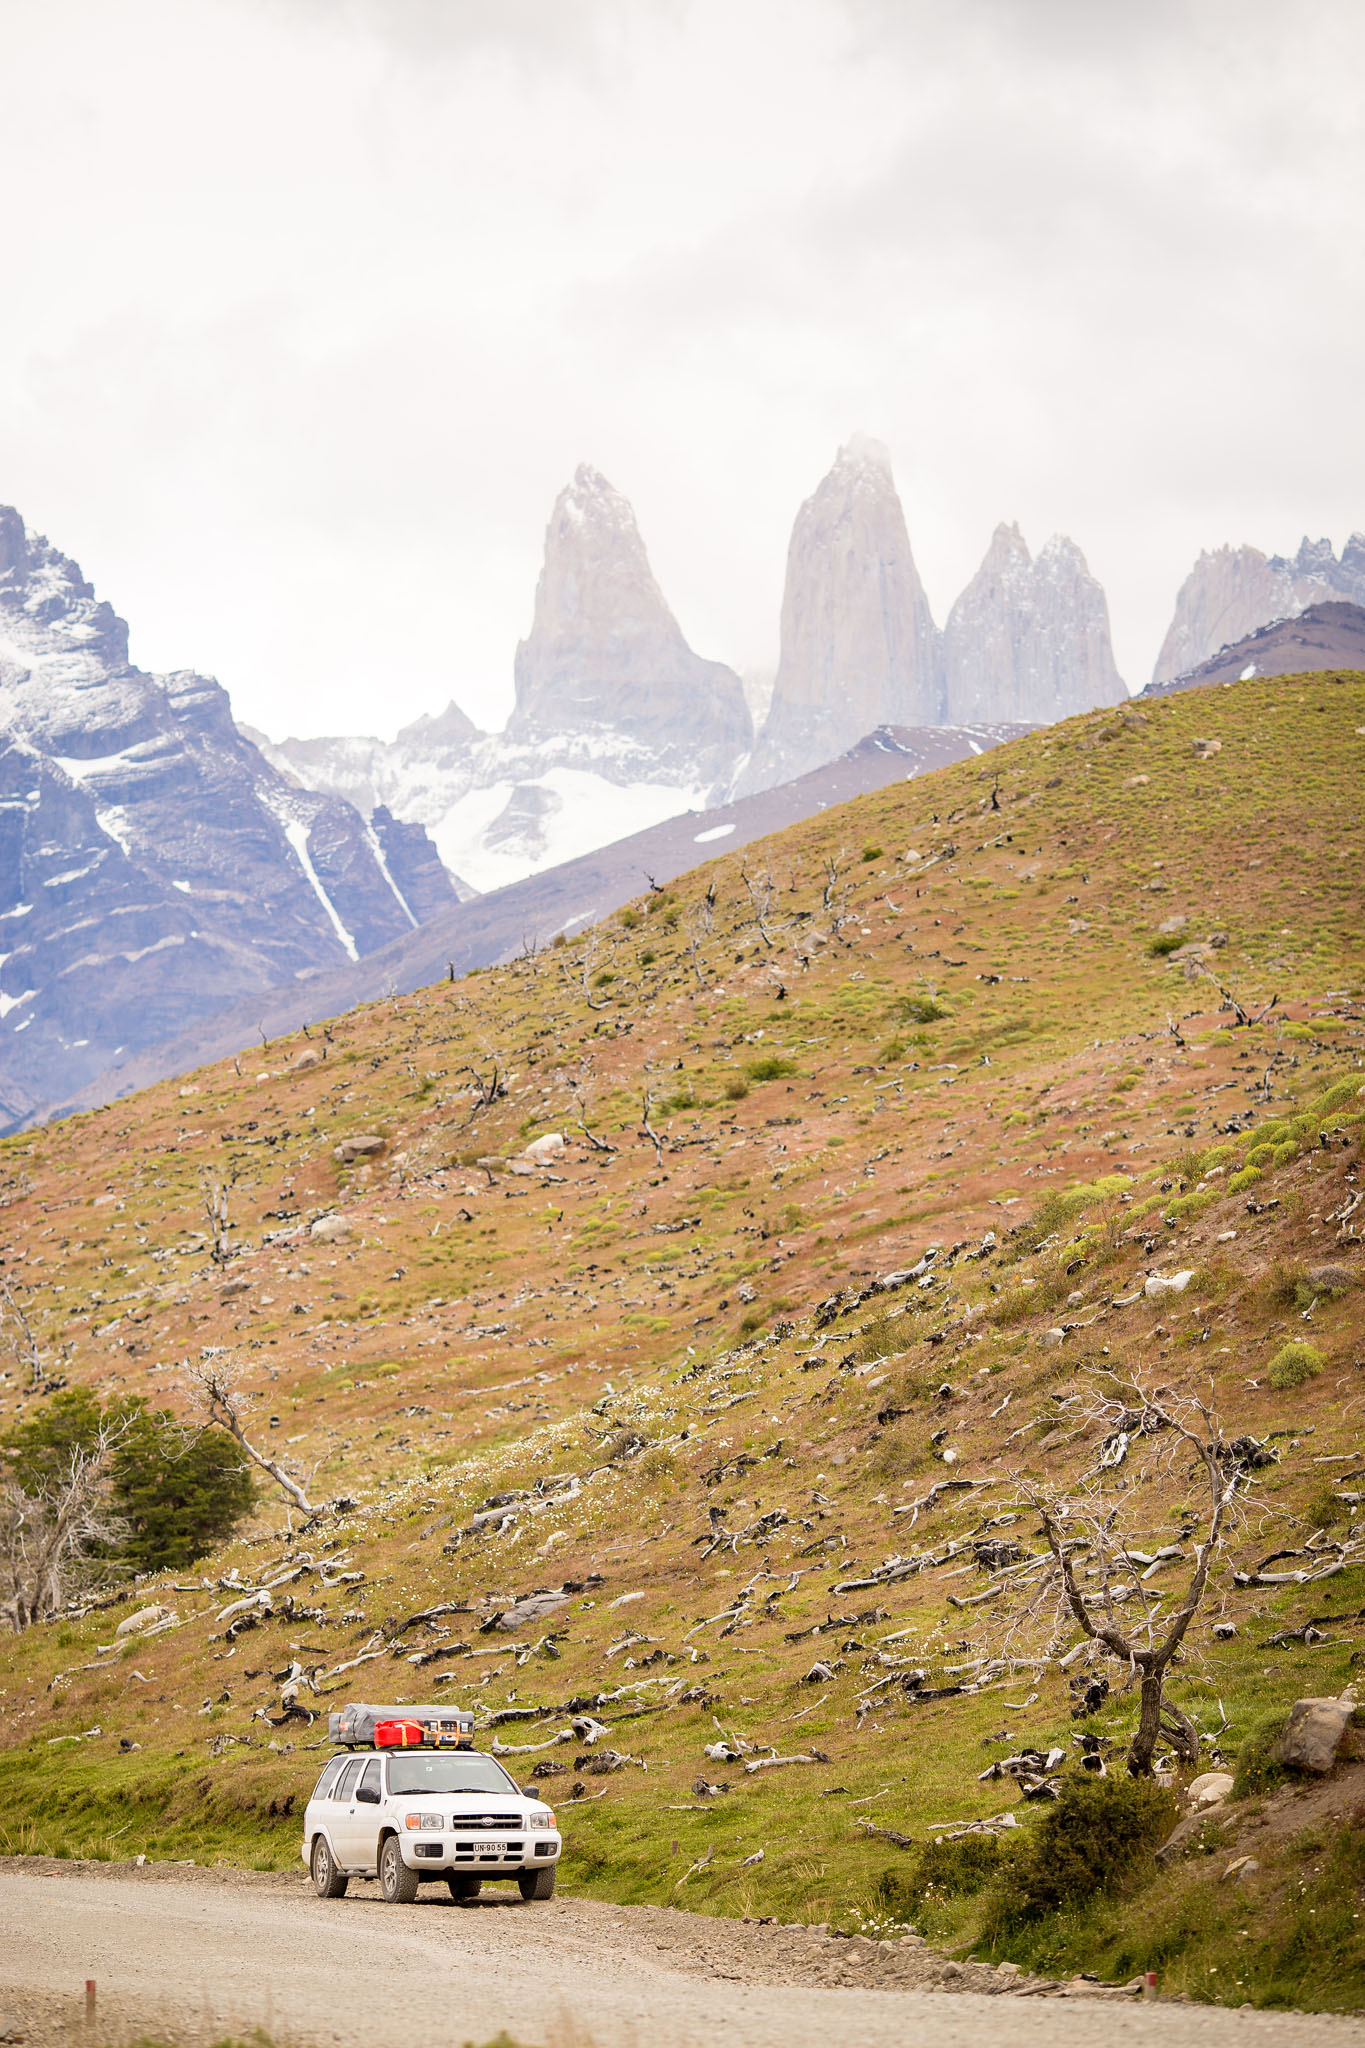 Wedding-Travellers-Overlanding-Destination-Wedding-Chile-Torres-del-Paine-tres-torres-three-towers